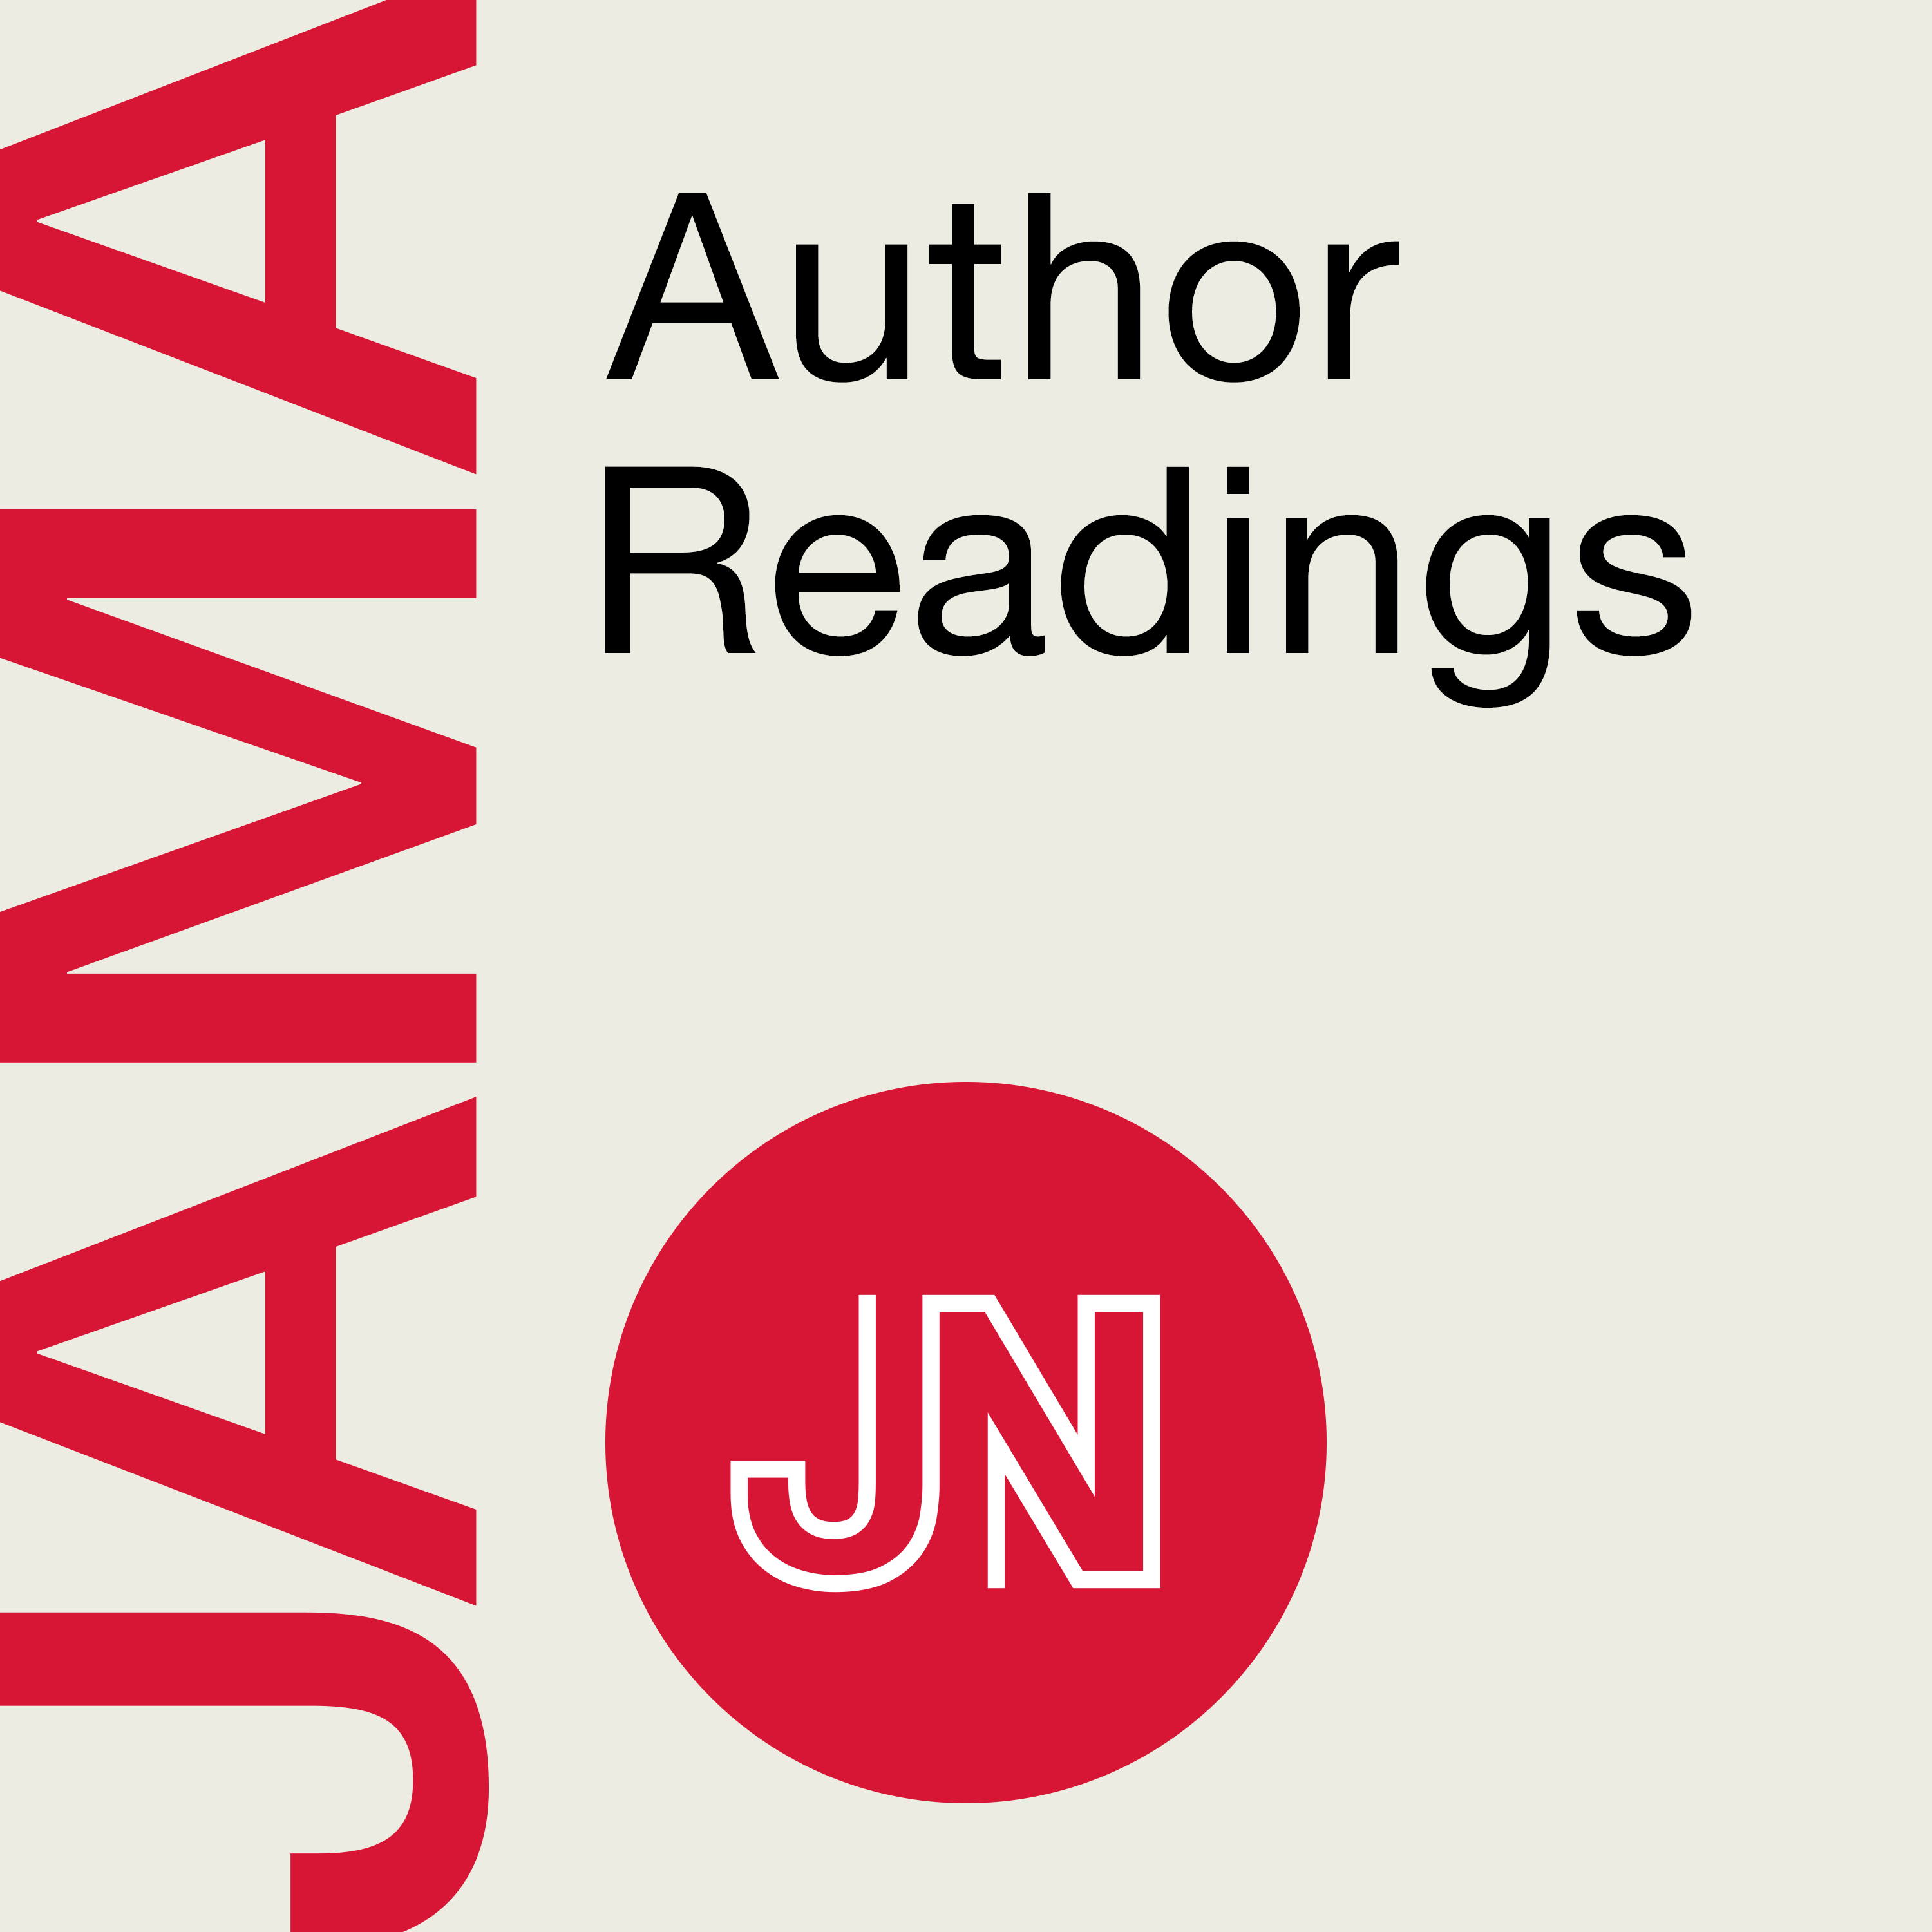 JAMA Author Readings: Viewpoints on research in medicine, health policy, & clinical practice. For physicians & researchers. logo